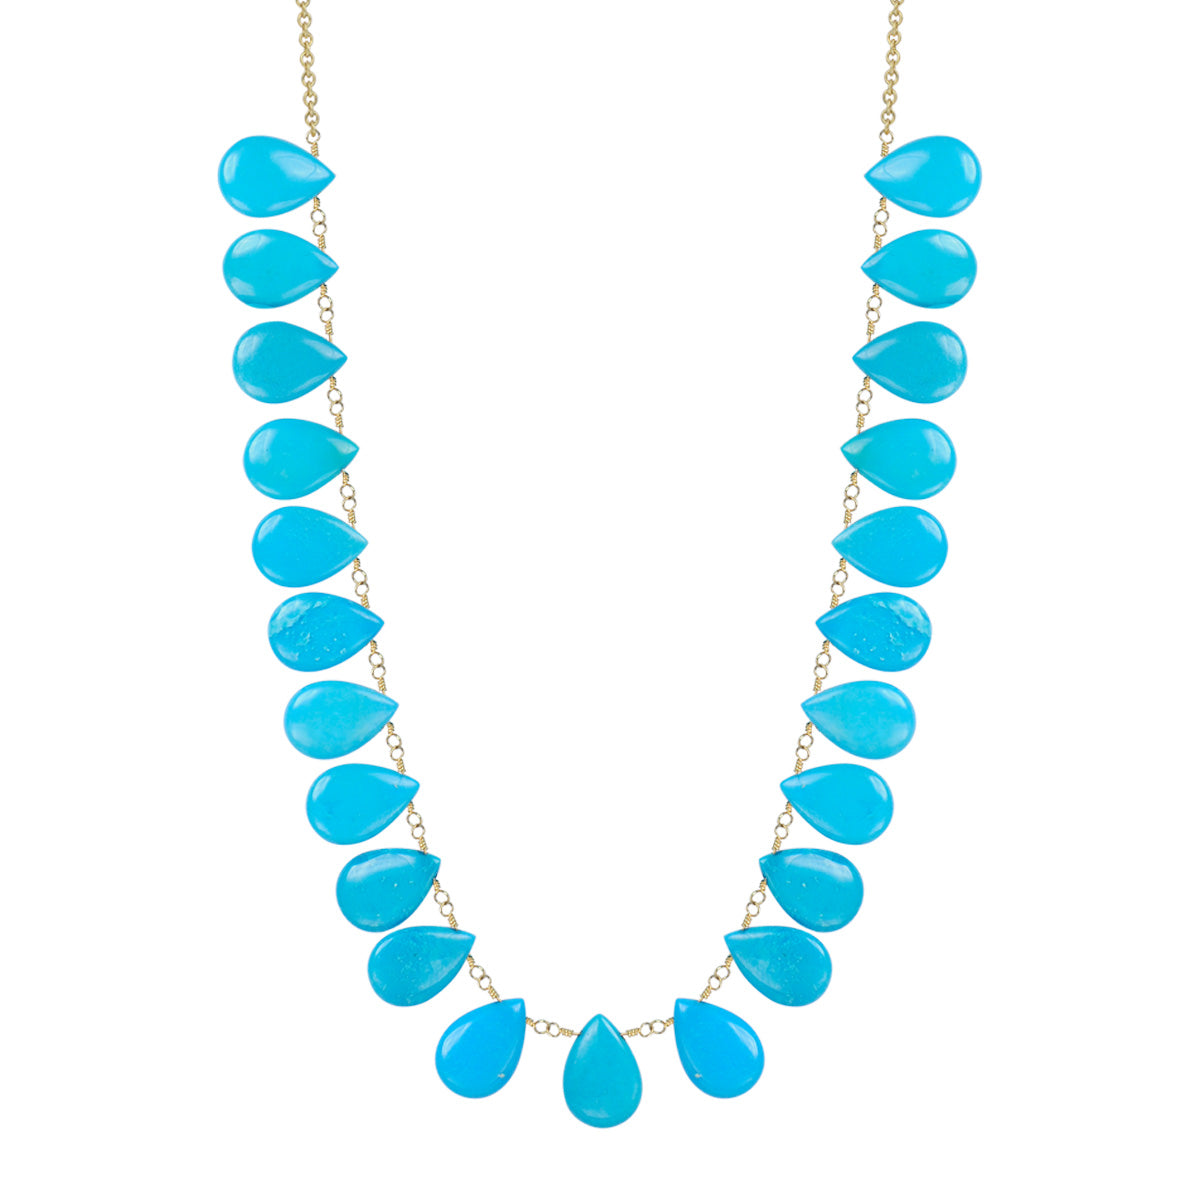 18K Gold Large Turquoise Teardrops on Chain